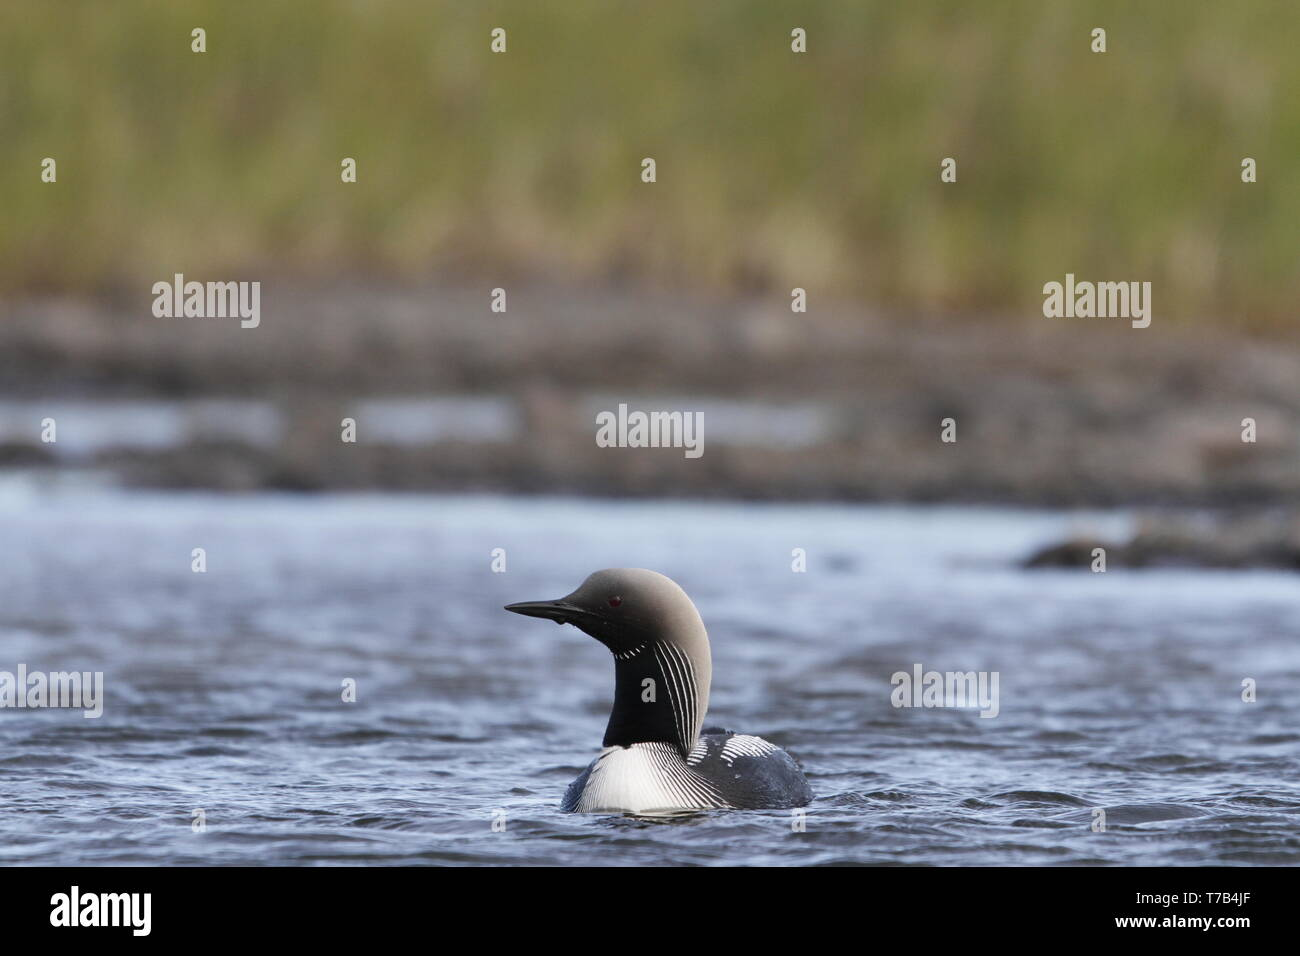 Lone adult Pacific Loon or Pacific Diver (Gavia pacifica) in breeding plumage swimming in arctic waters, near Arviat Nunavut, Canada - Stock Image